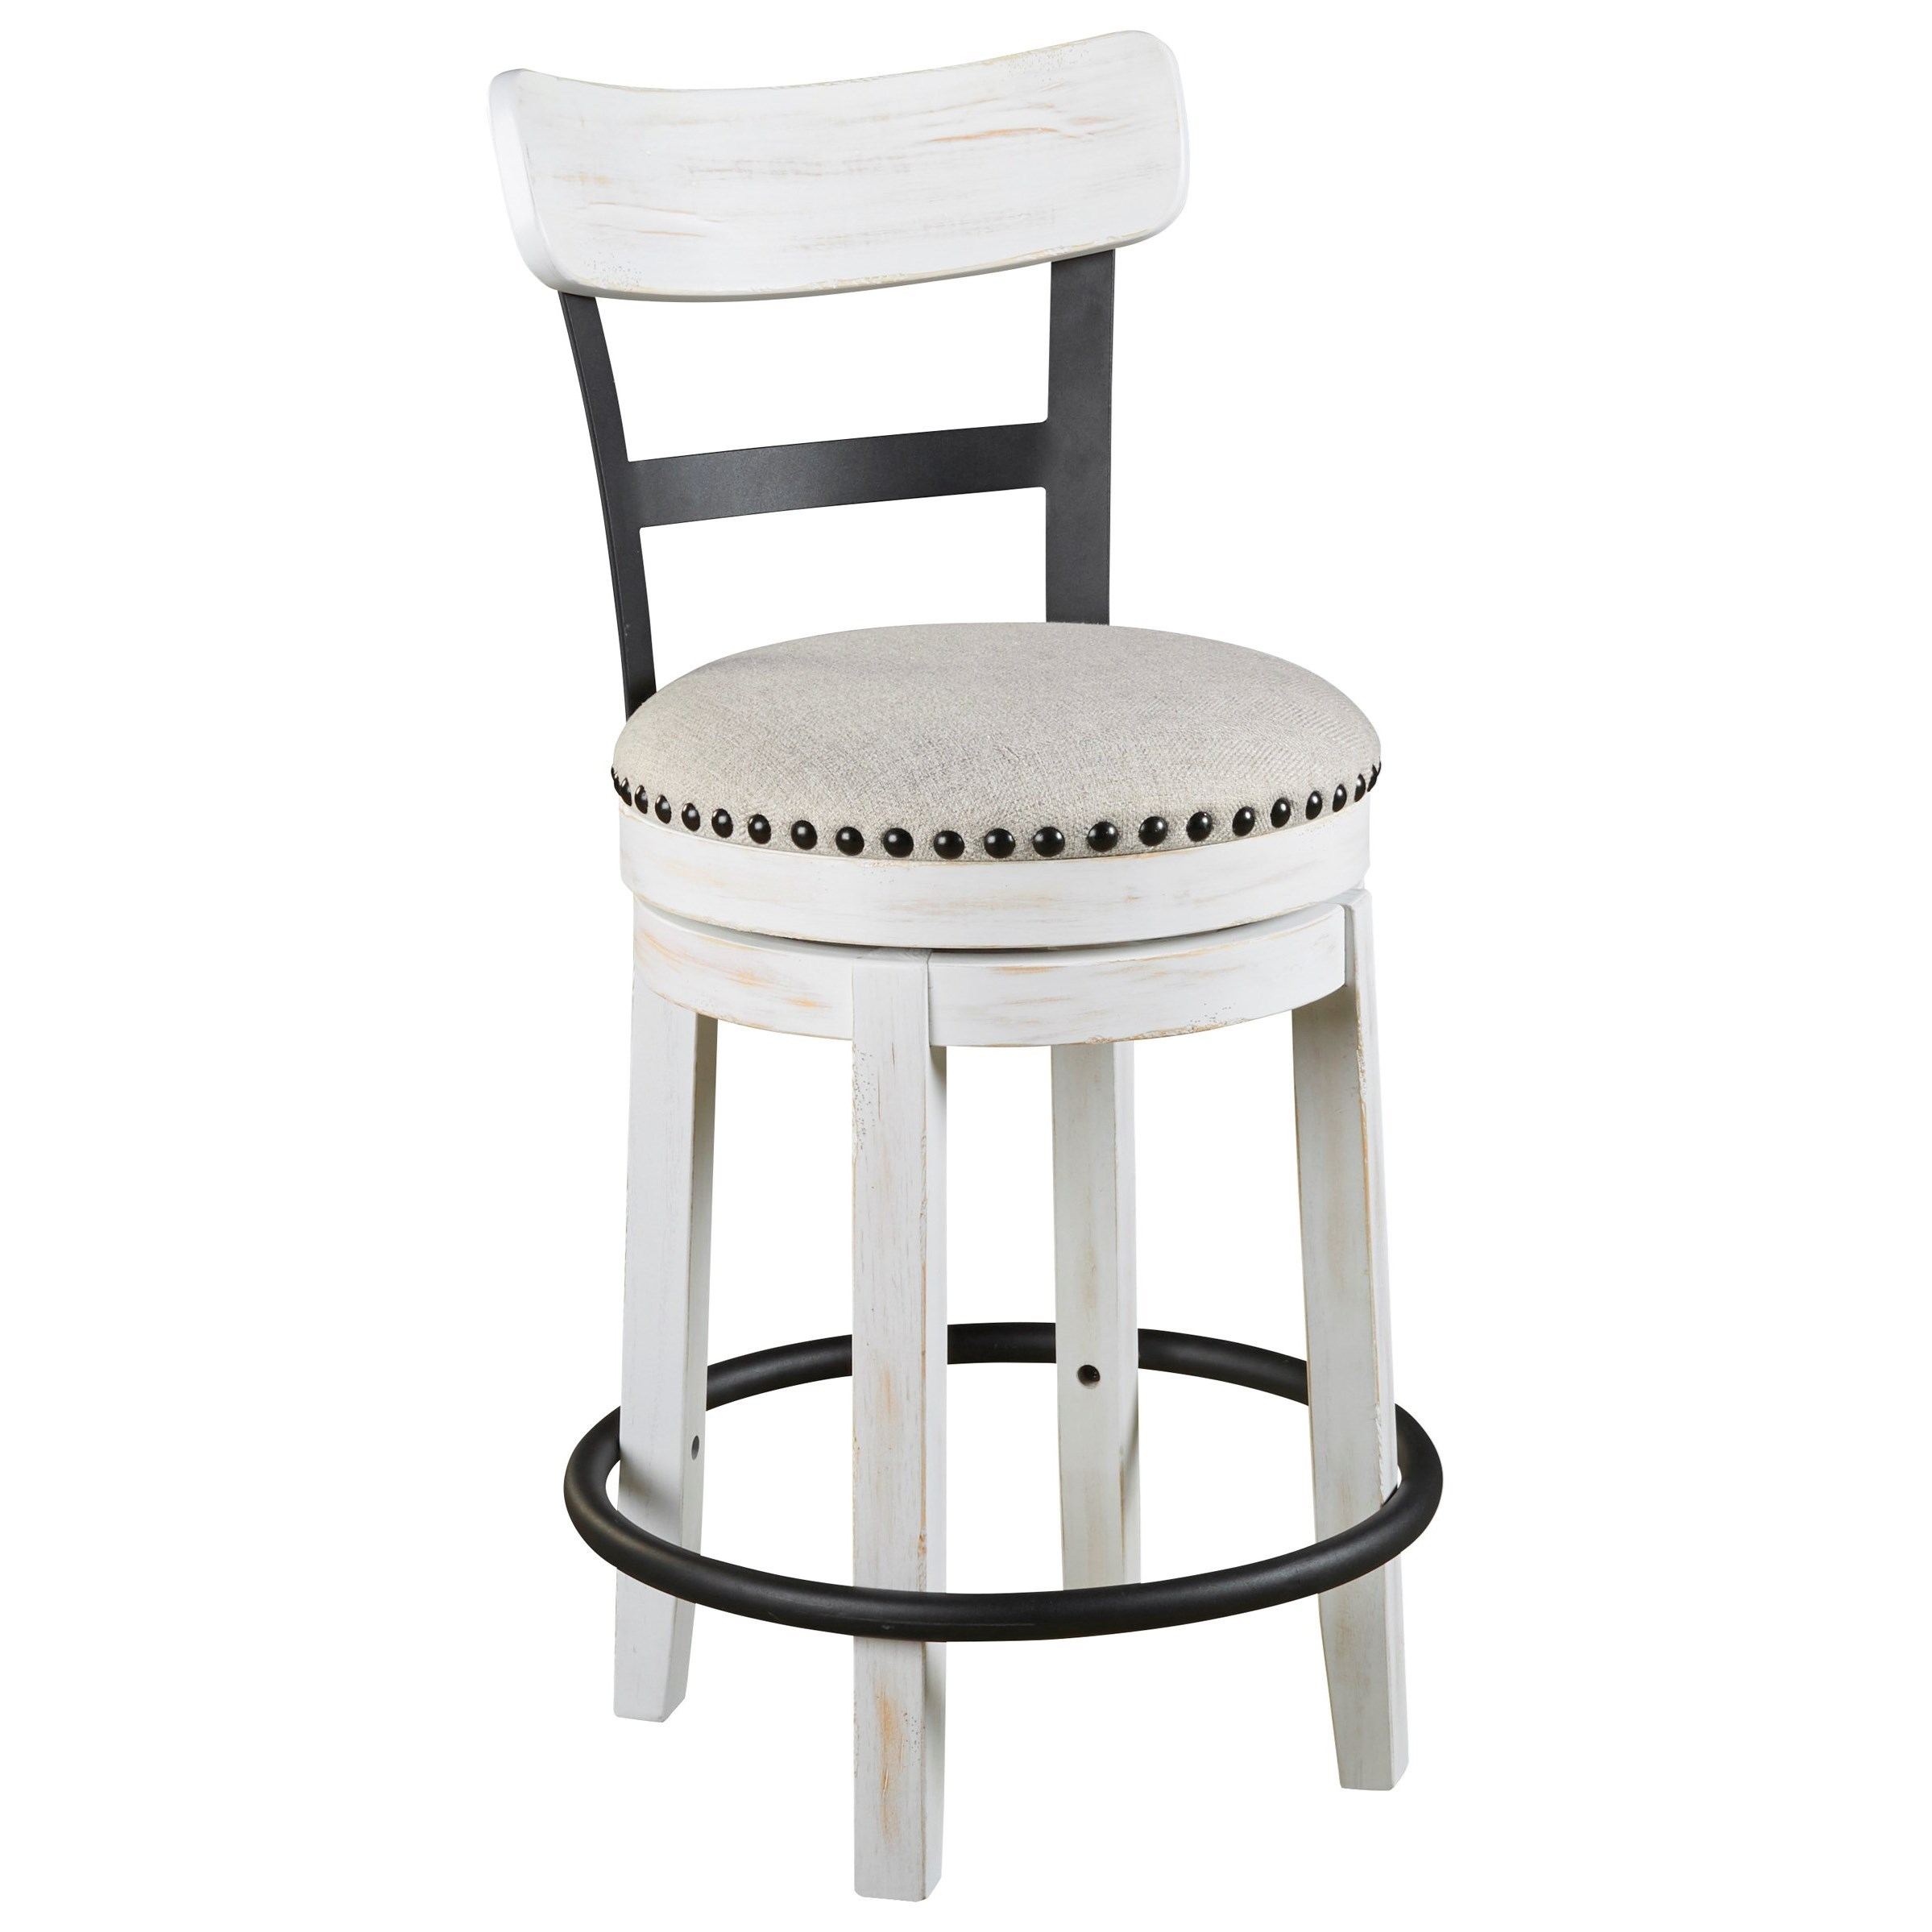 Valebeck Counter Height Swivel Barstool by Ashley at Morris Home